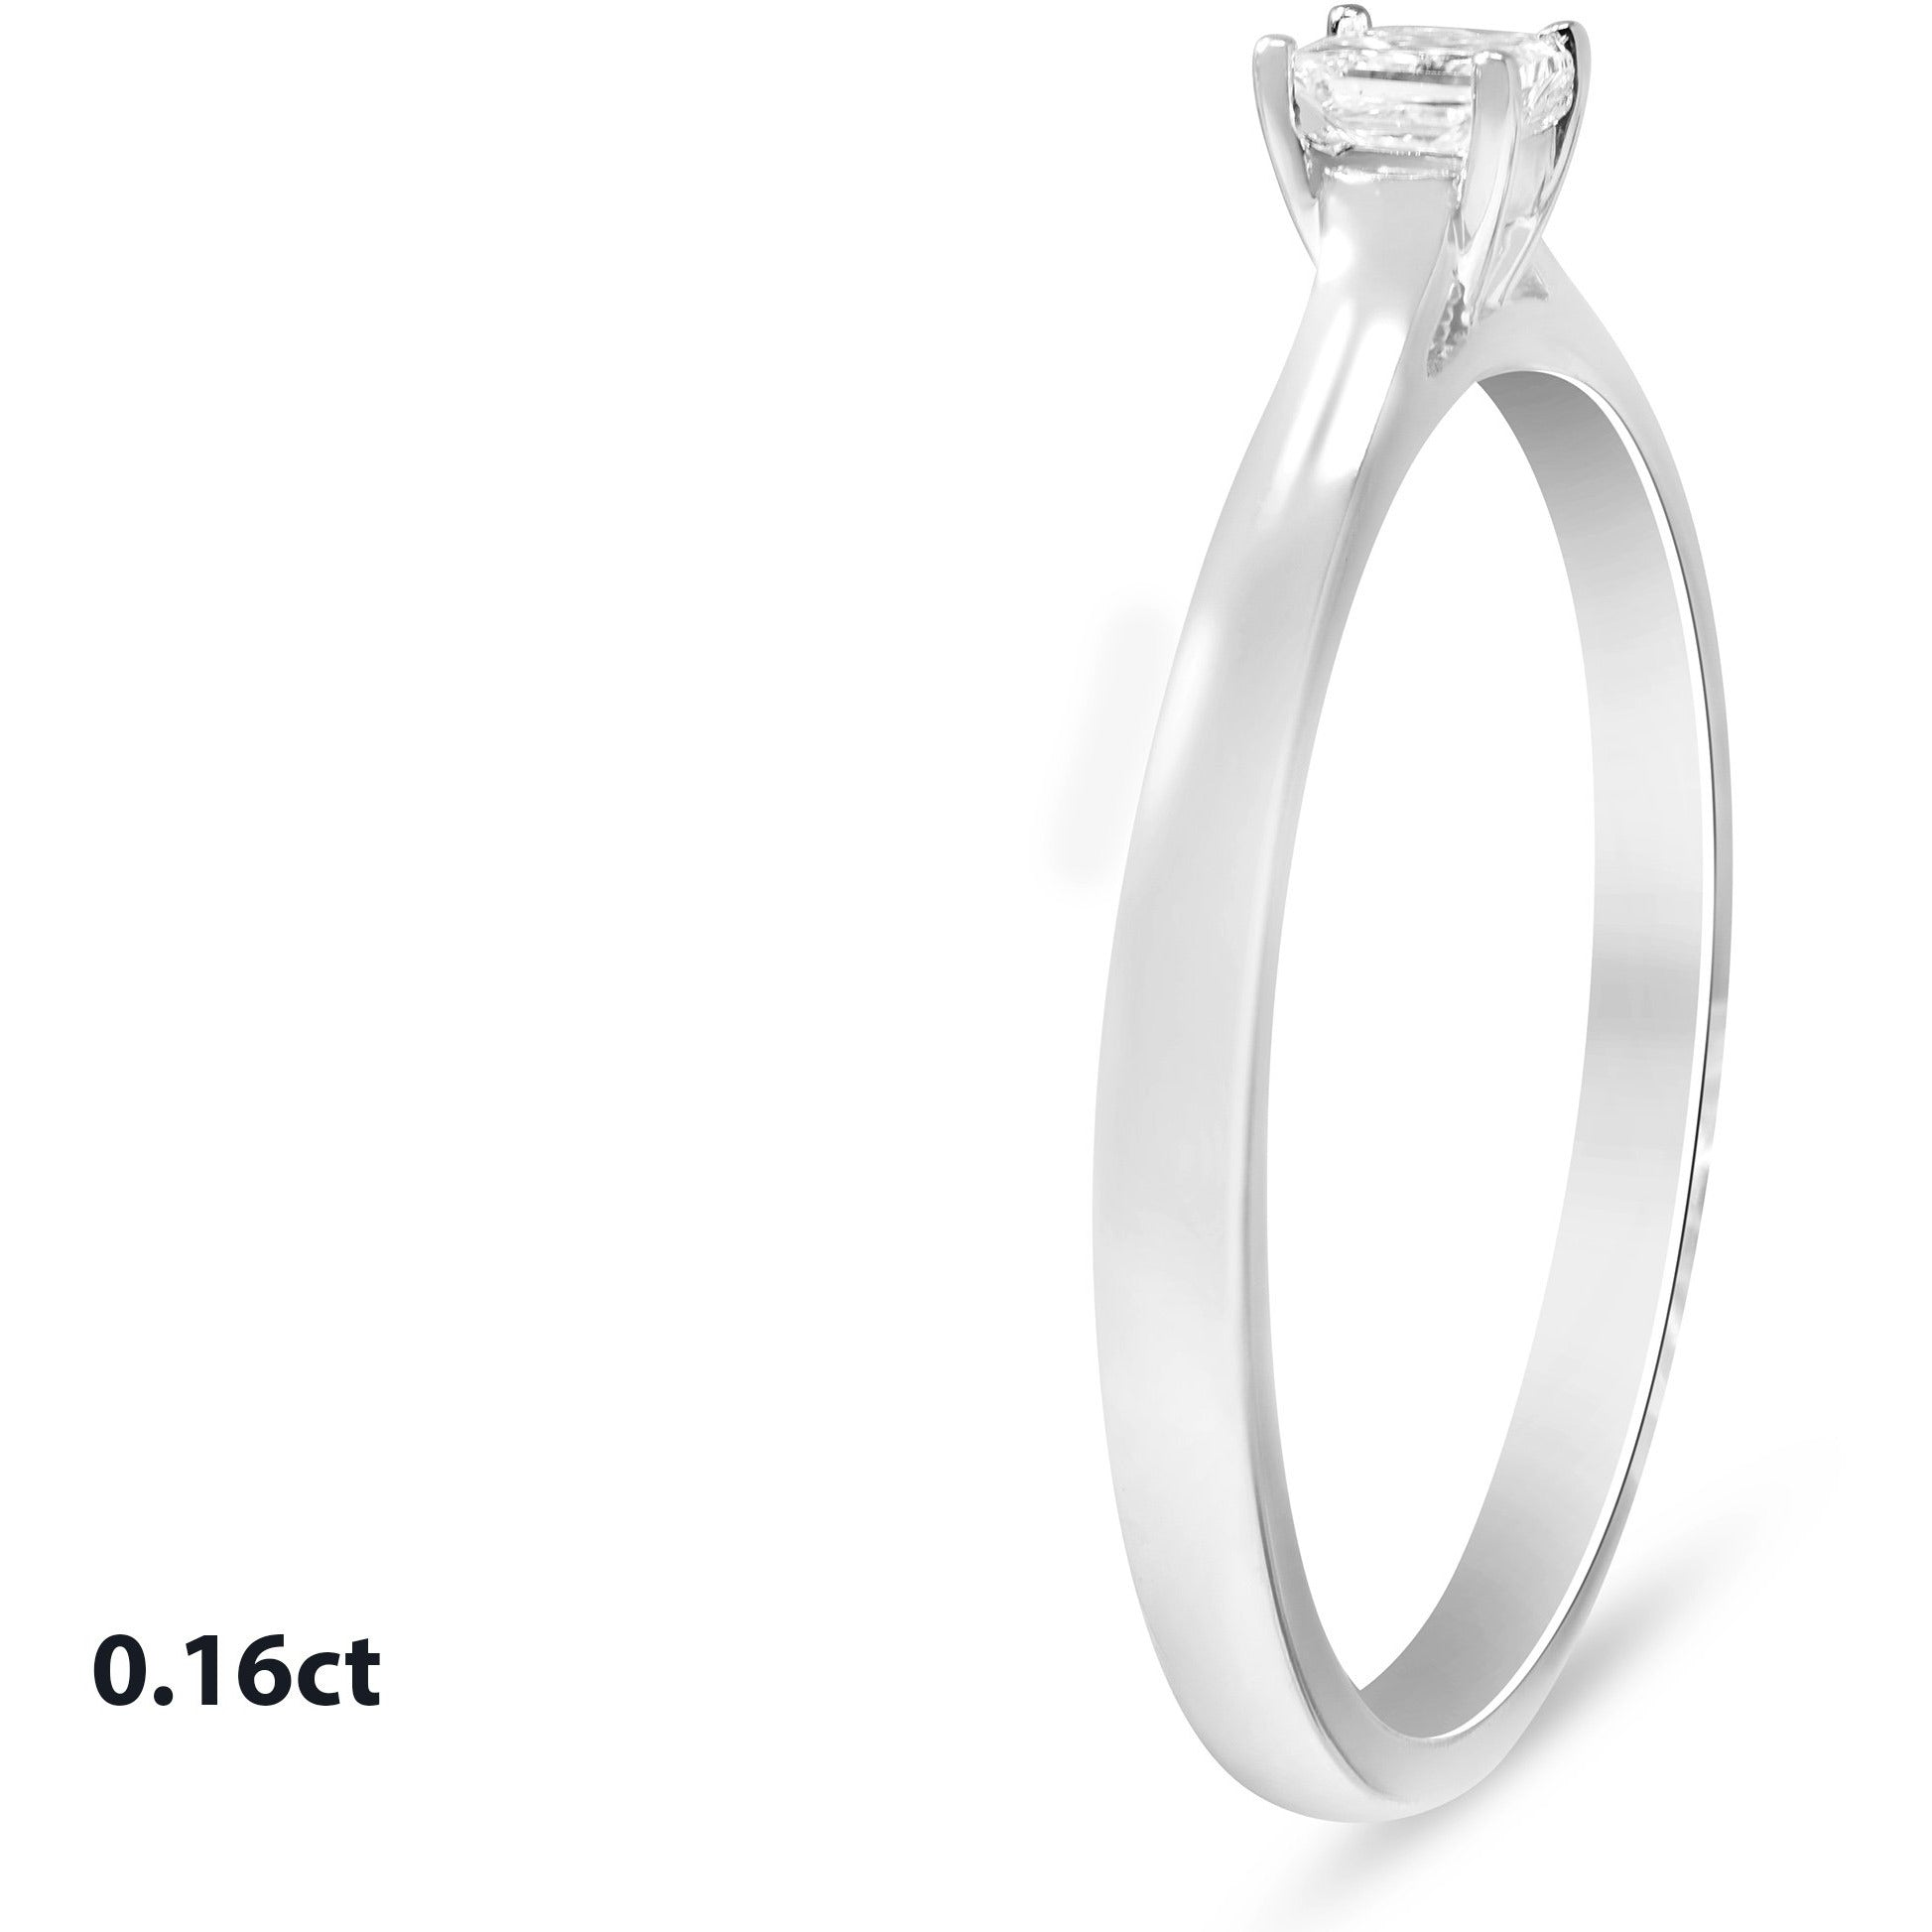 Premium Quality Princess Cut Solitaire Diamond Rings in 9ct White Gold